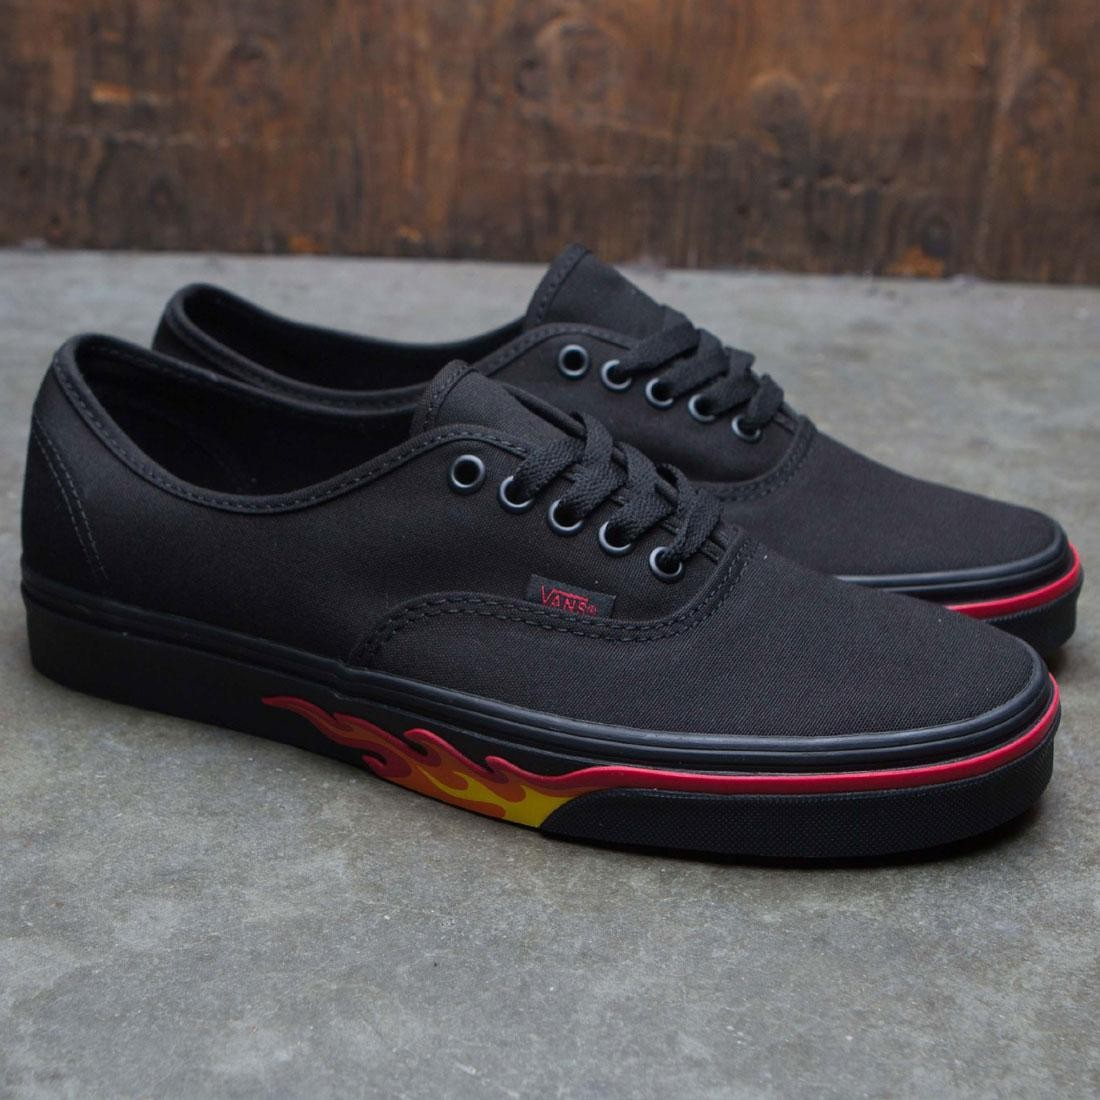 Vans Men Authentic - Black Flame Wall (black / flames)